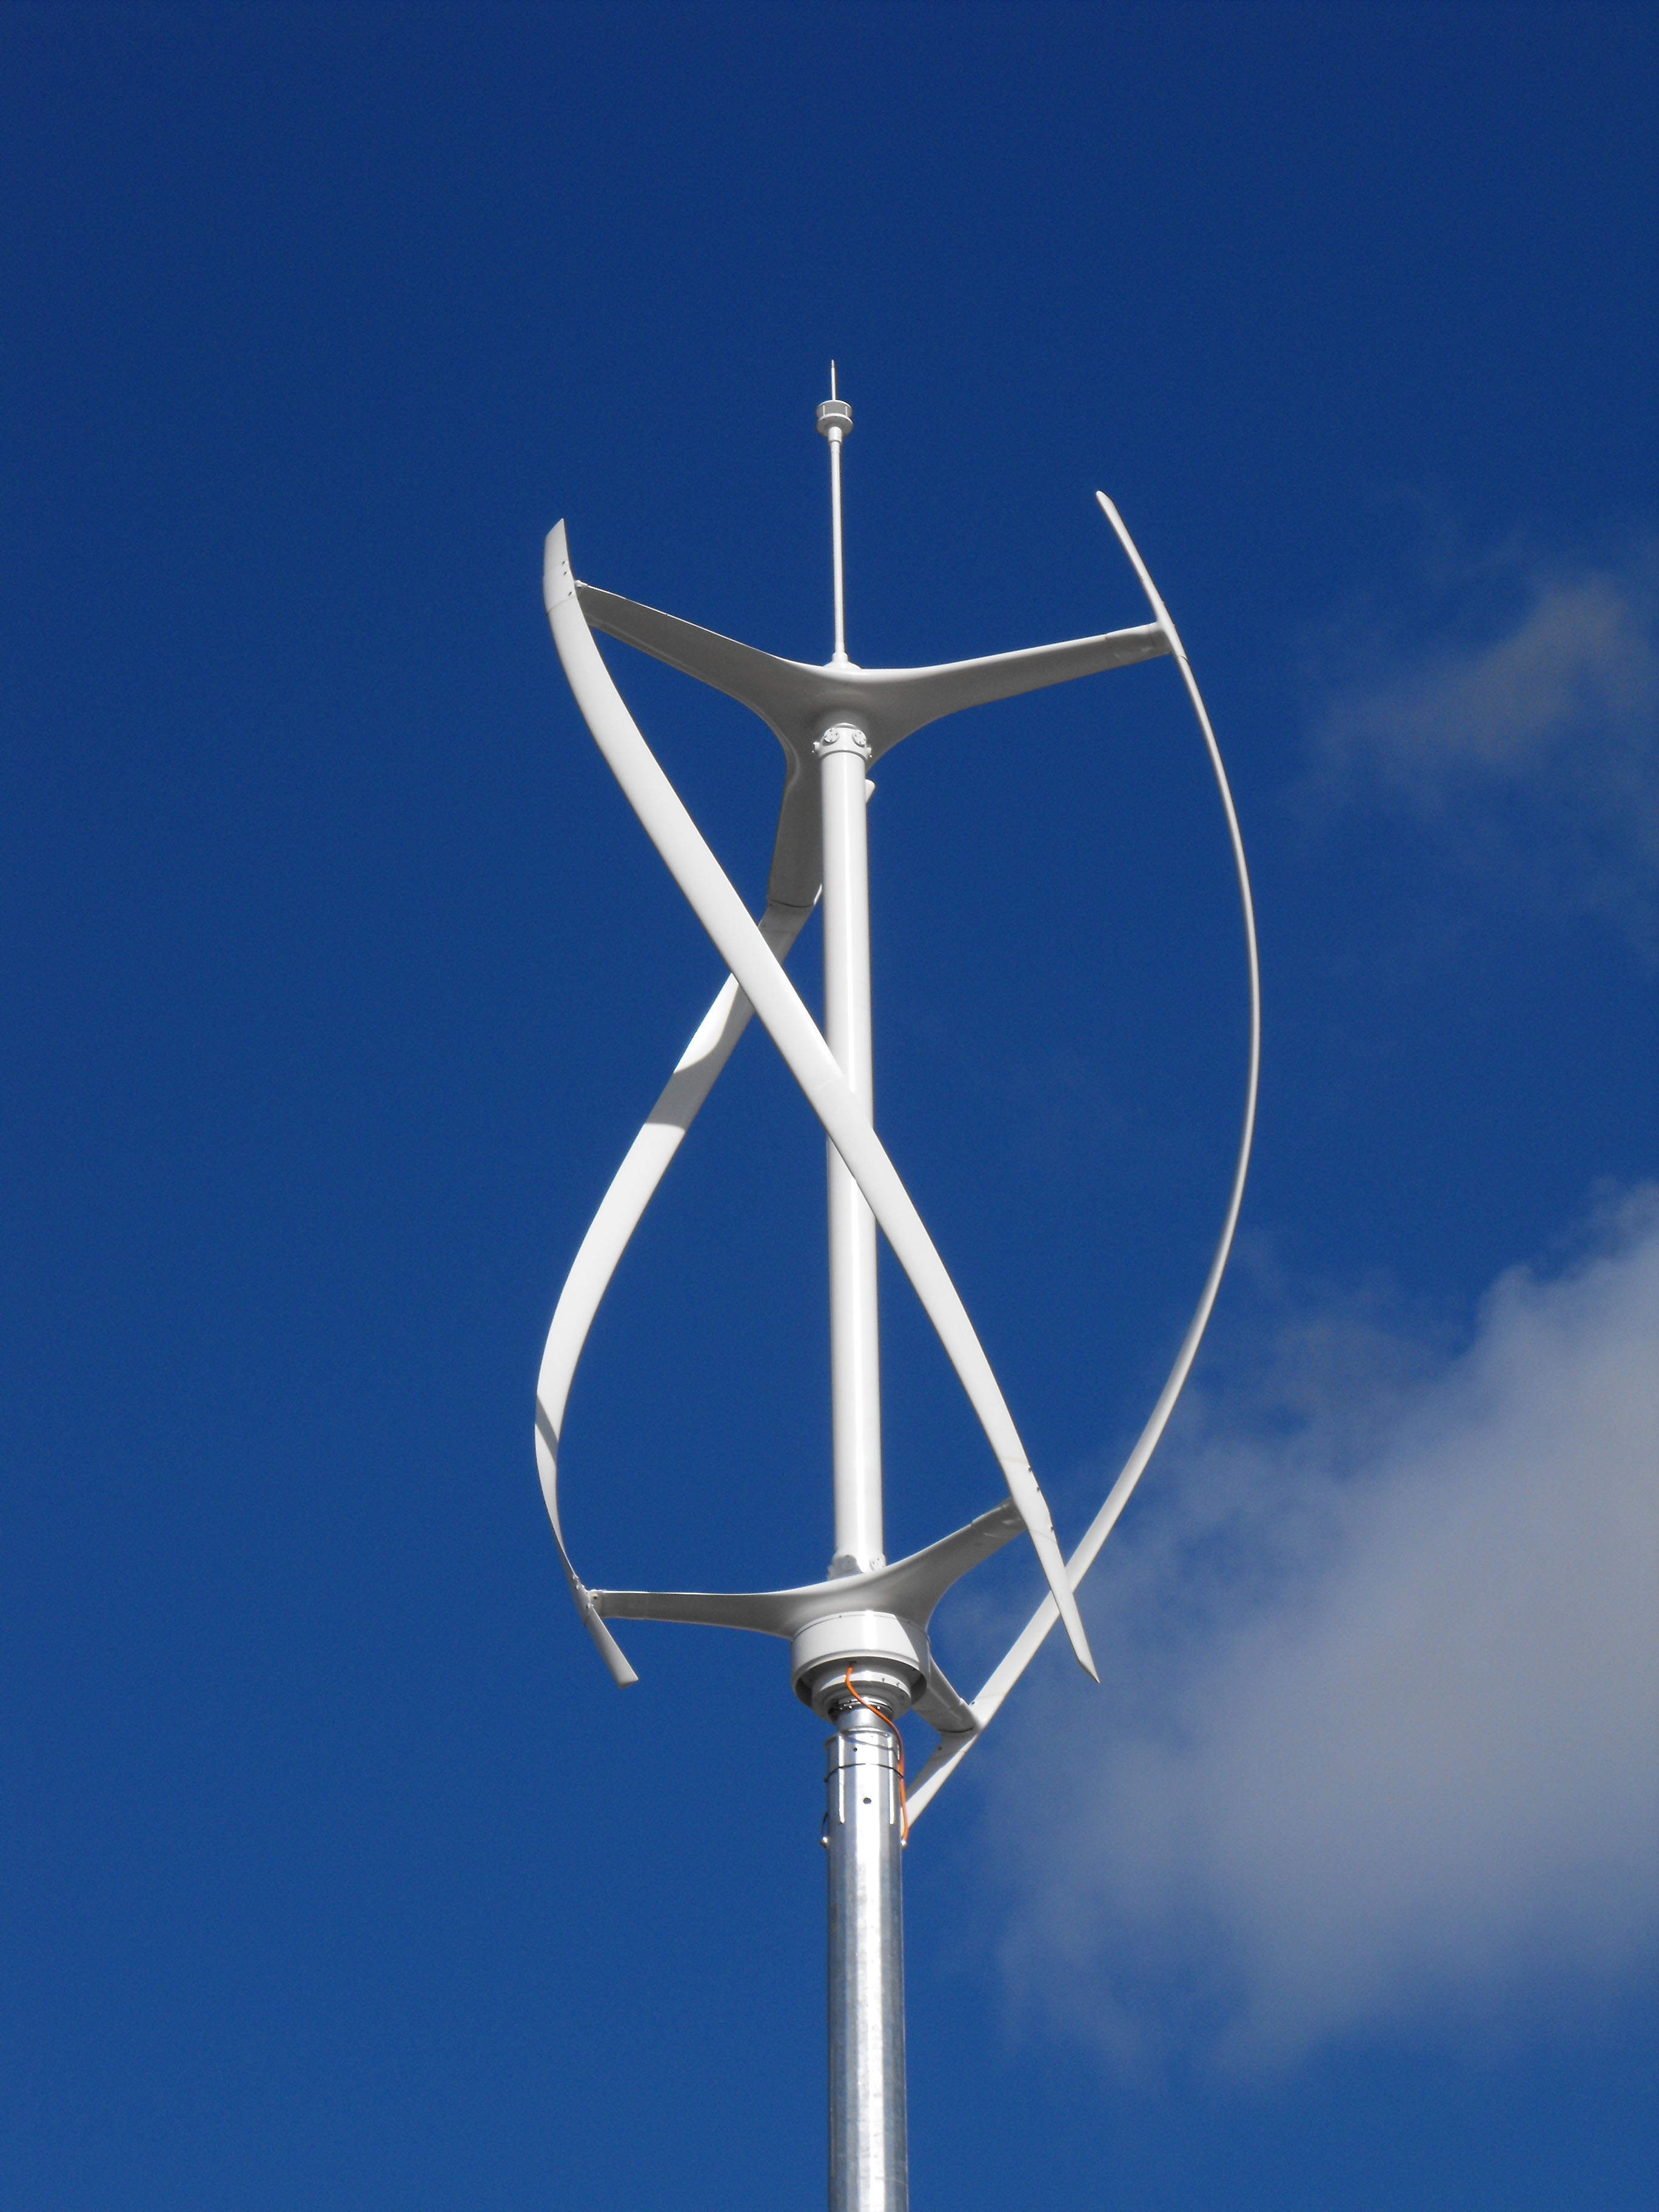 wind turbine a study to harness a Requirement to harness these resources consistently, and maintain high energy efficiency of these through the turbine life cycle is expected to drive demand for related inspection services through the forecast period  key features of the study:  the global wind turbine blade inspection services market report caters to various.